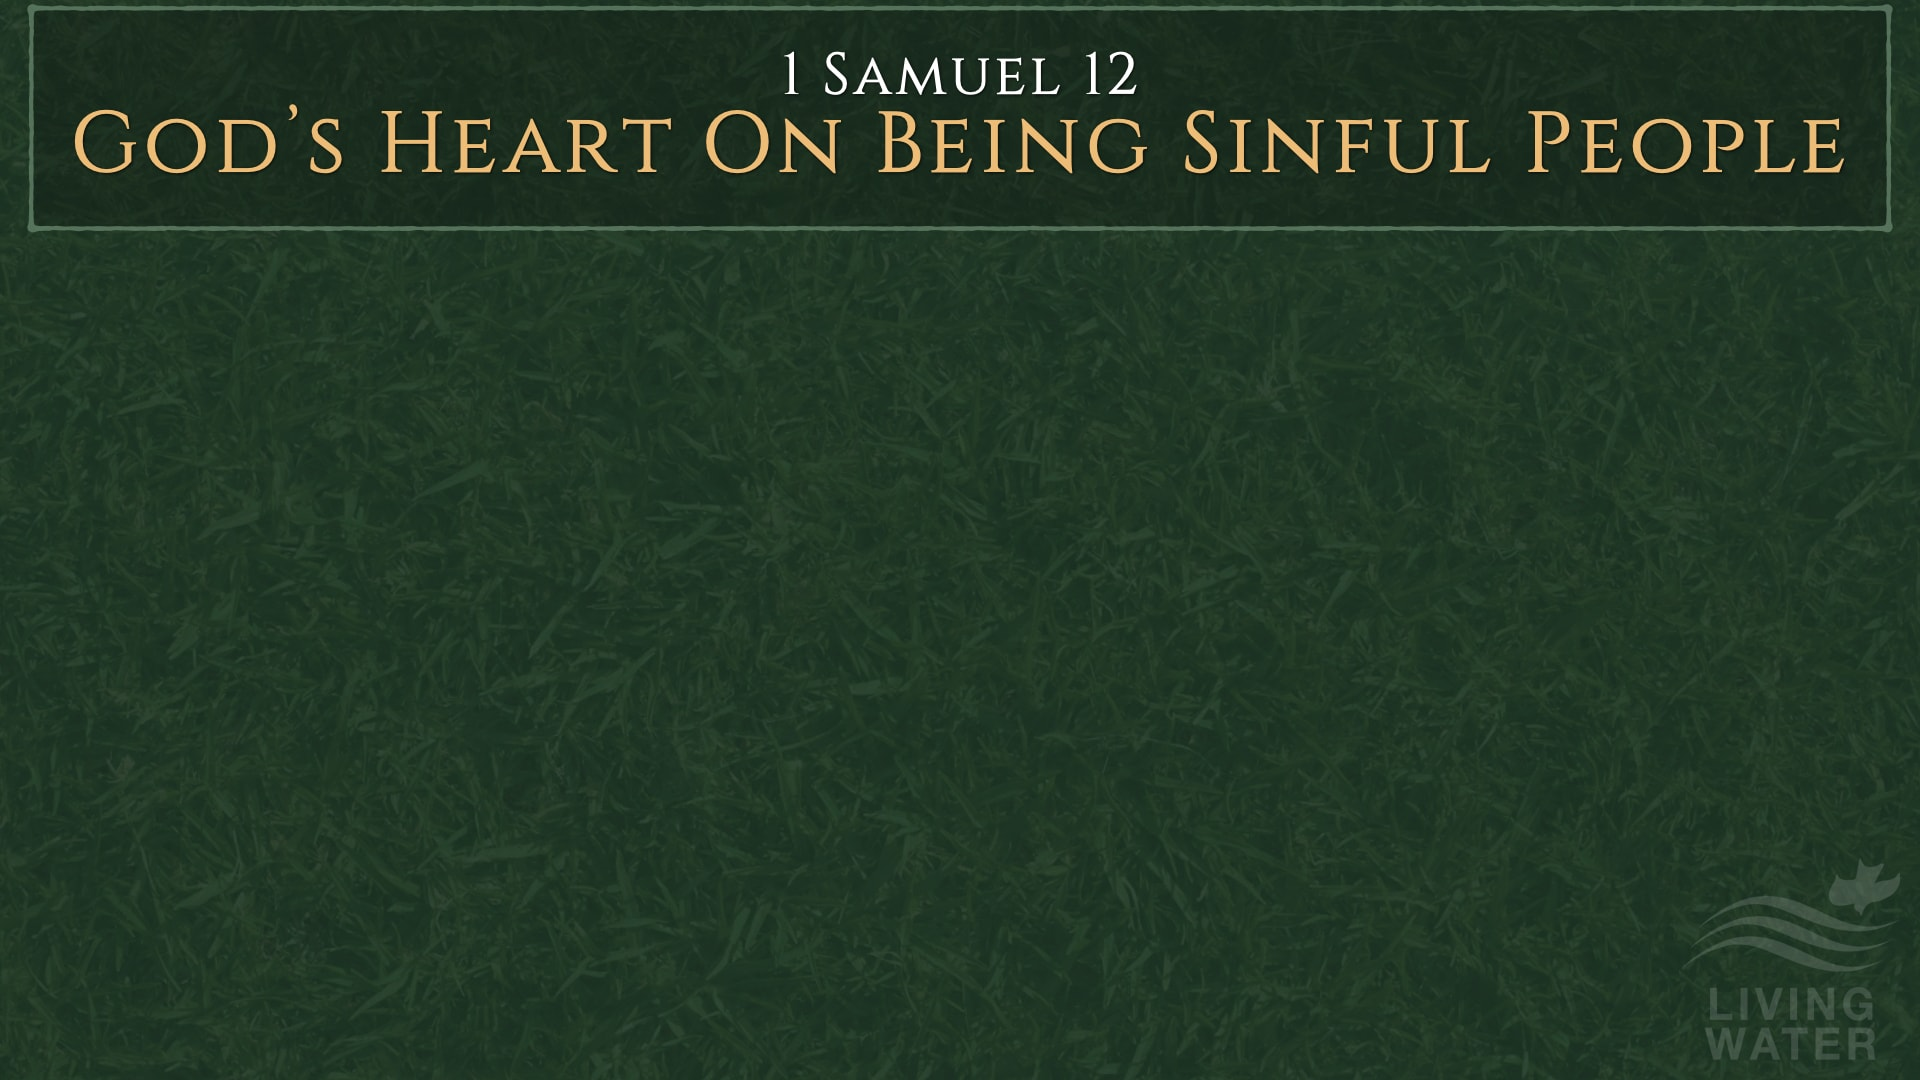 1 Samuel 12, God's Heart On Being Sinful People